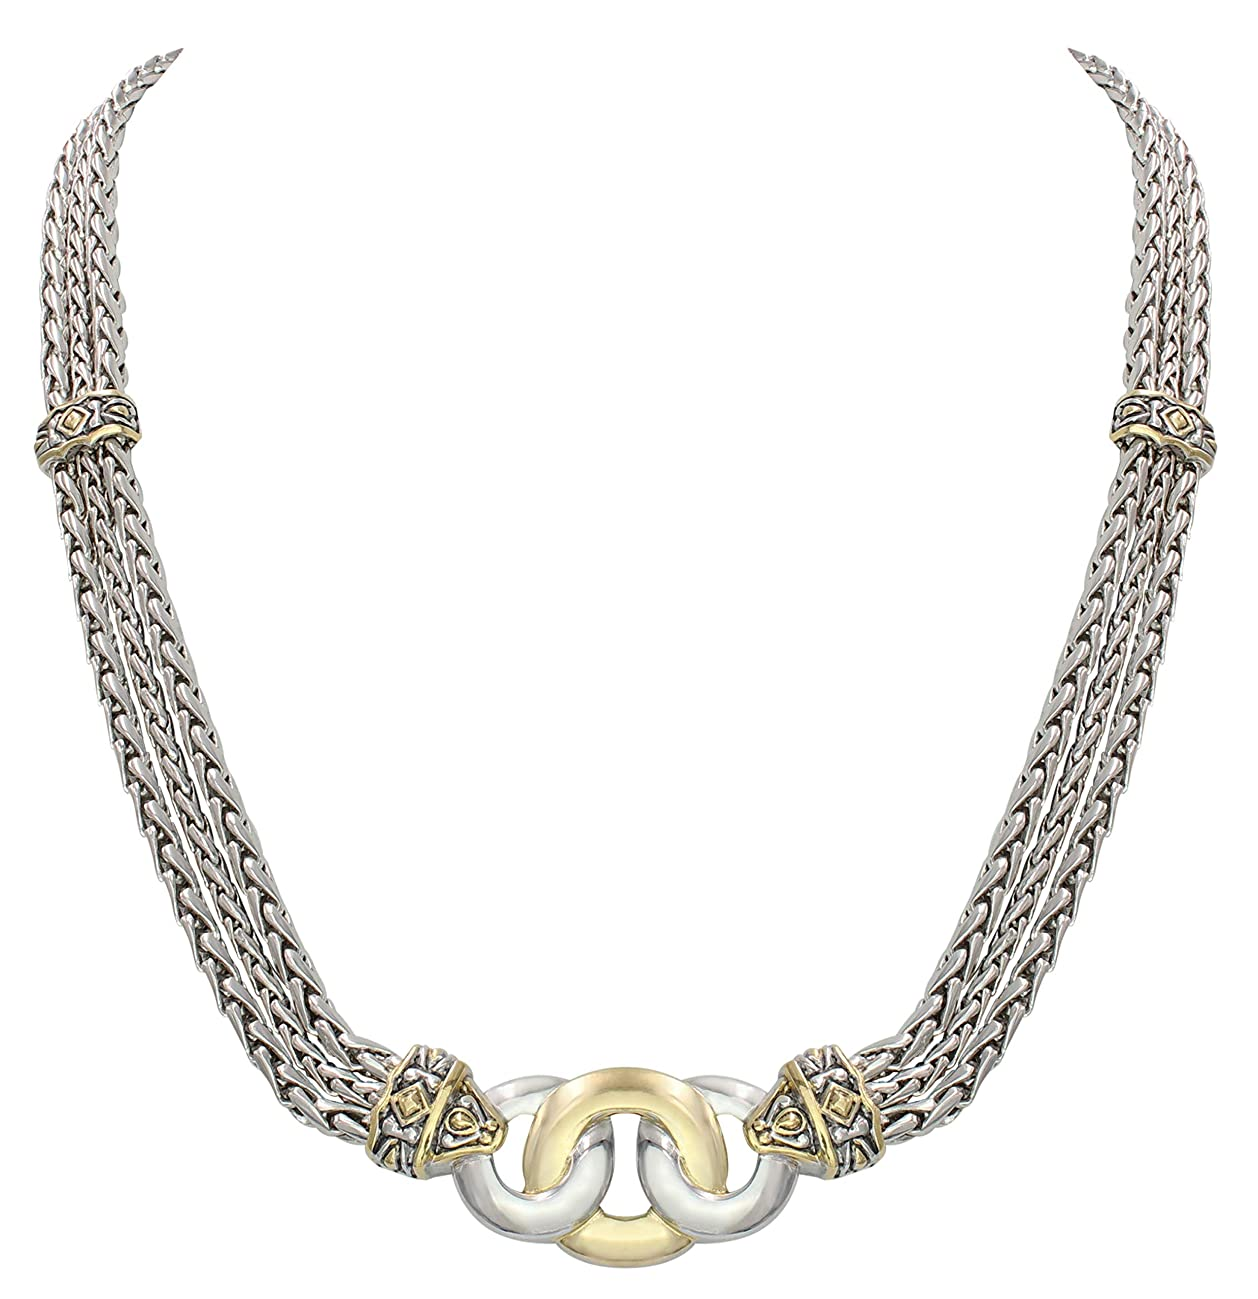 John Medeiros Two Tone Necklace for Women Triple Strand Chain Three Circle Design Made in America 17